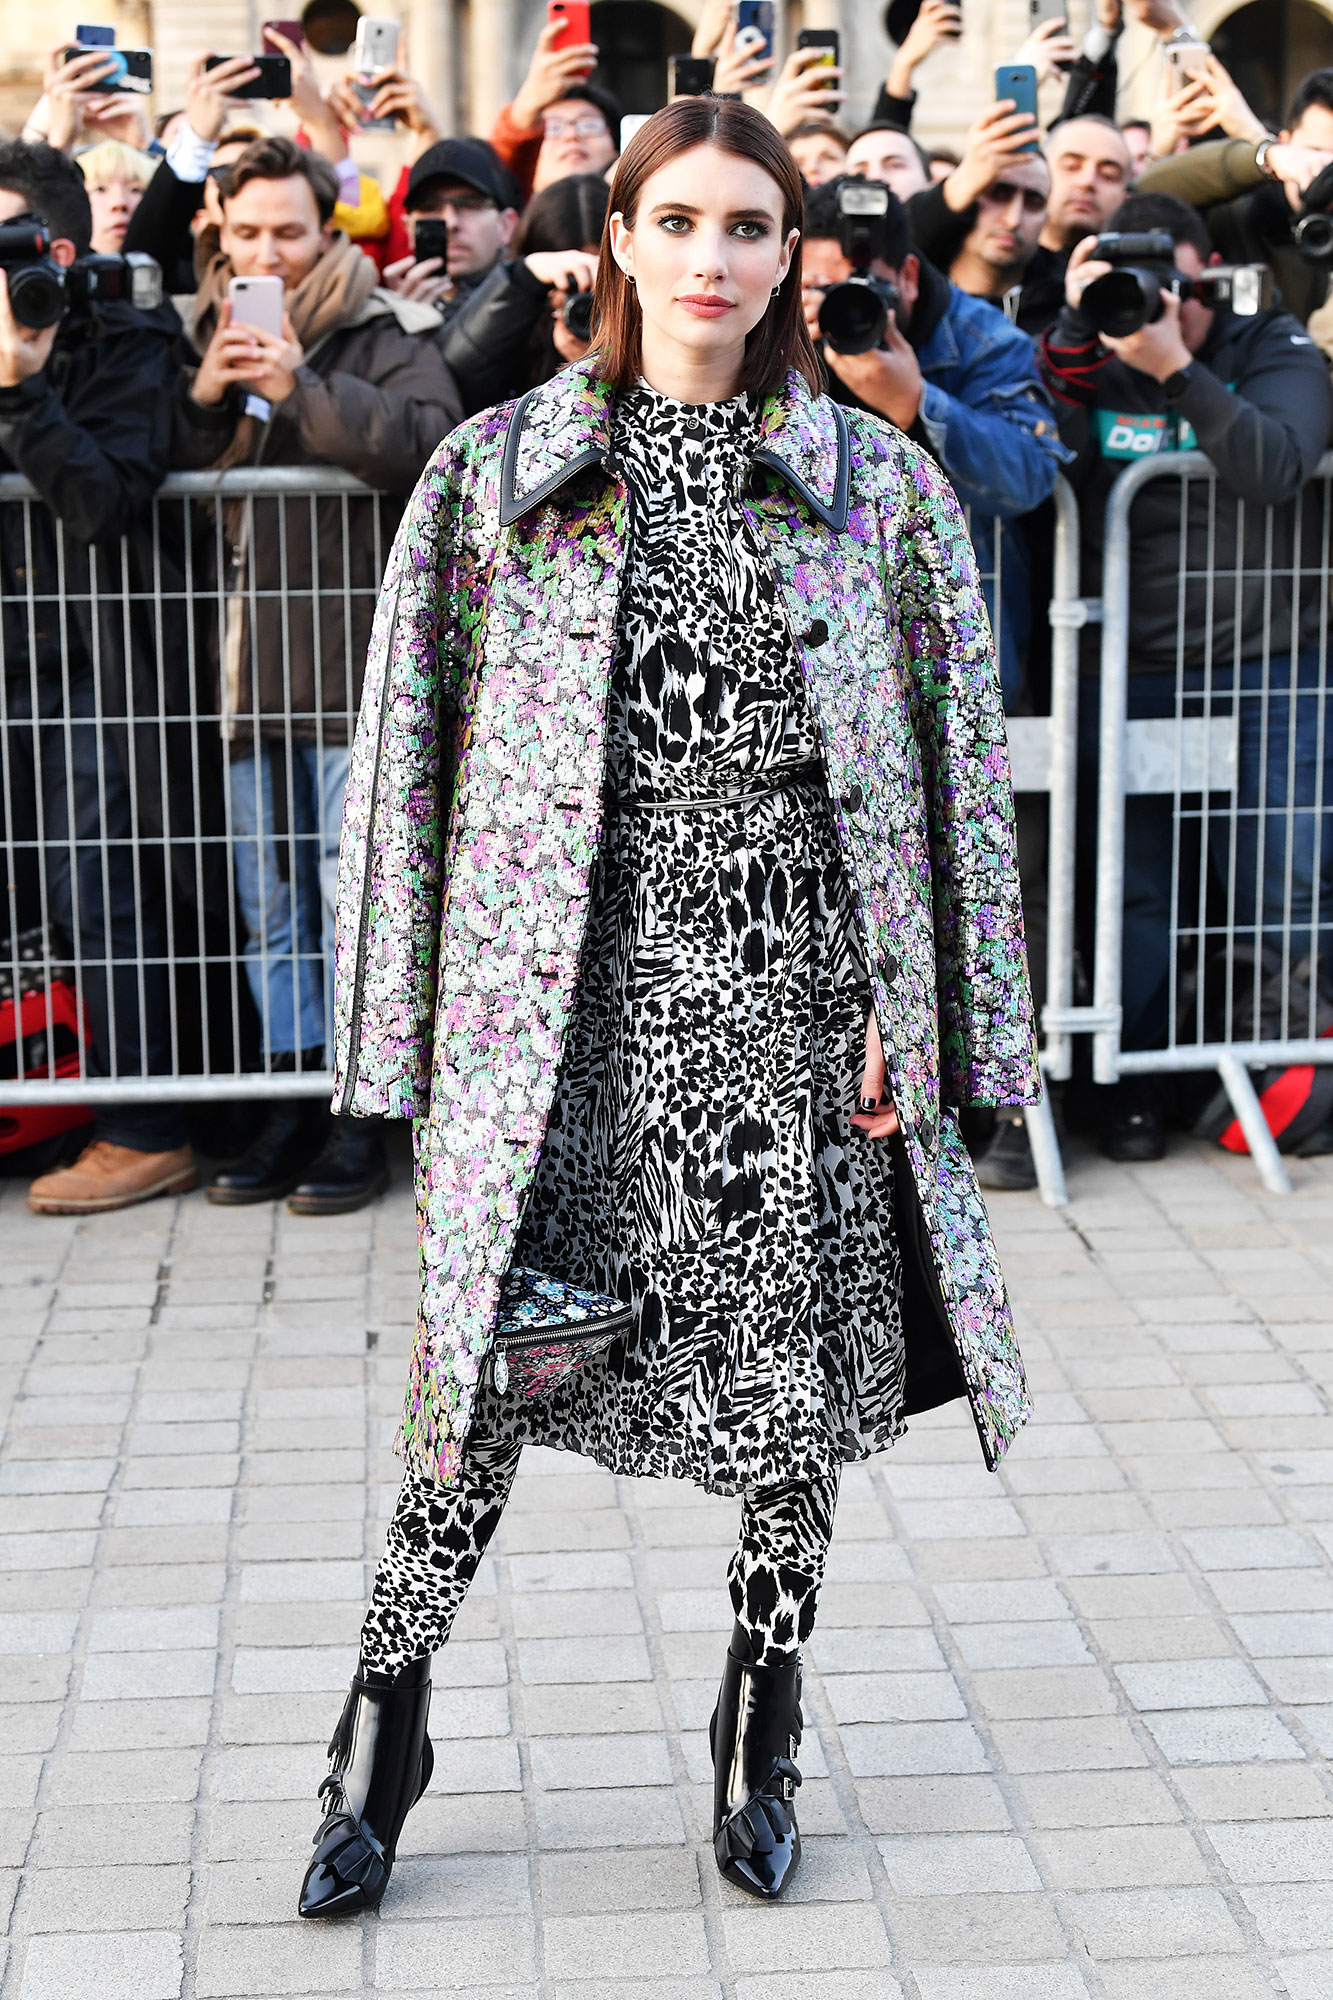 Emma Roberts Stars Closed Out Paris Fashion Week on a Sartorial High Note - Who says you can't mix prints? The actress was all about pattern play at the Louis Vuitton show on Tuesday, March 5.